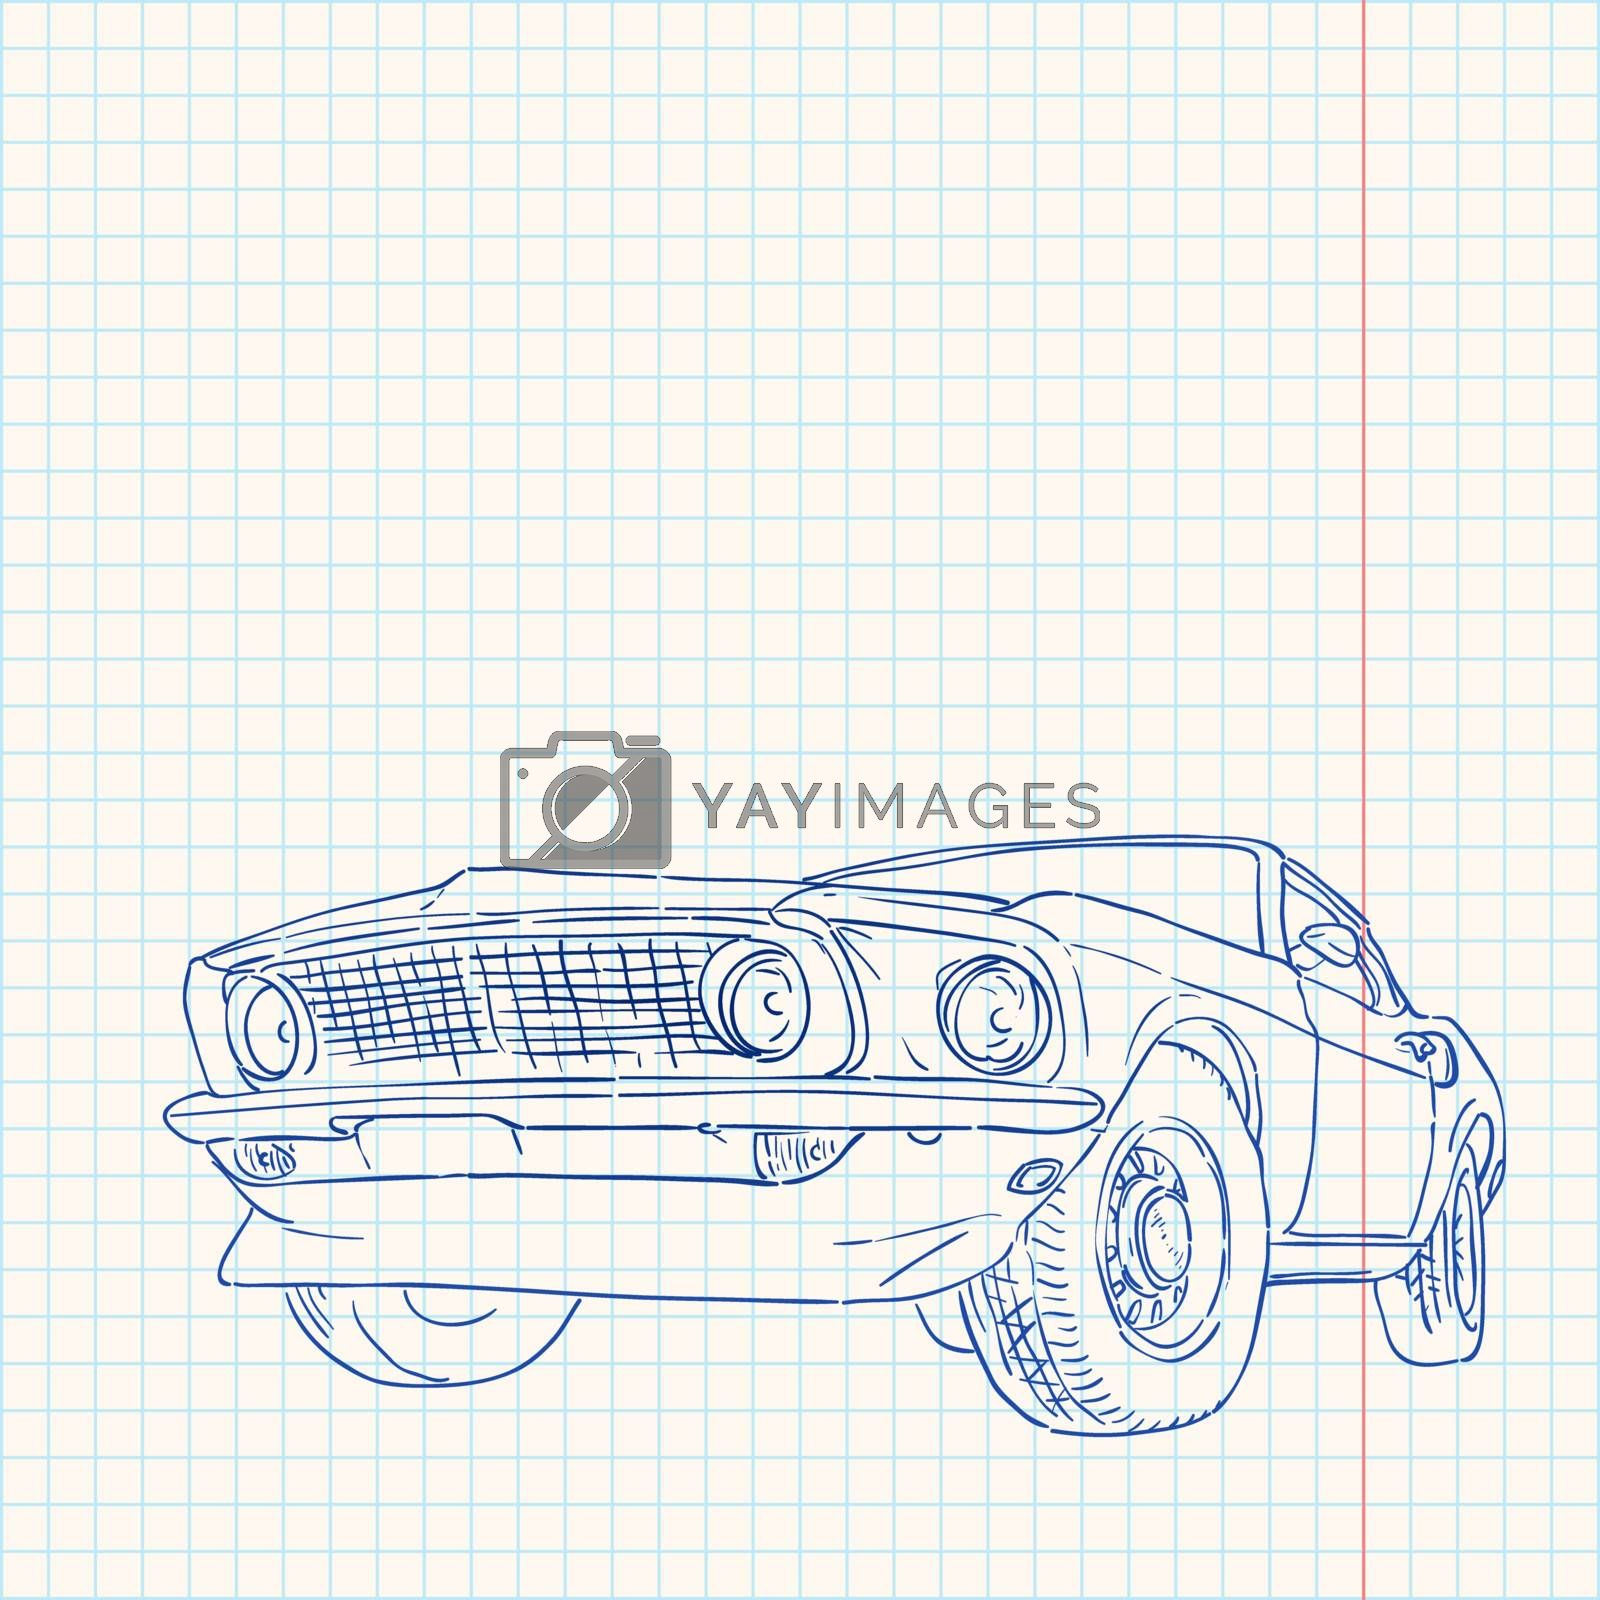 Notebook paper with blue lines and muscle car illustration